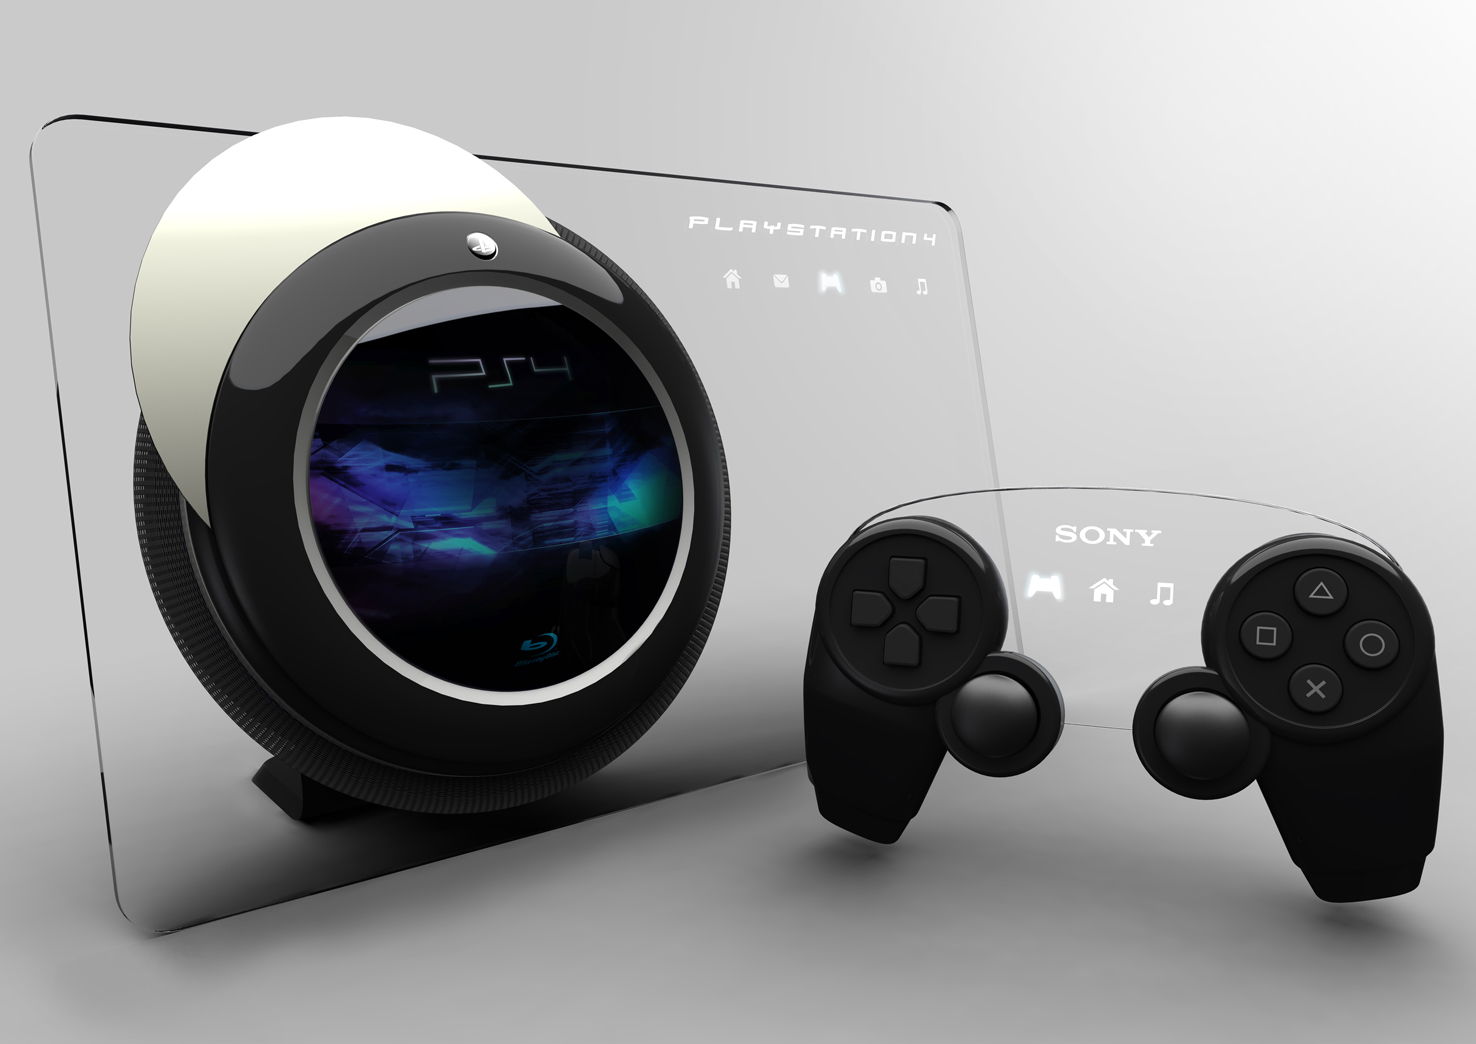 A concept design of the ps4